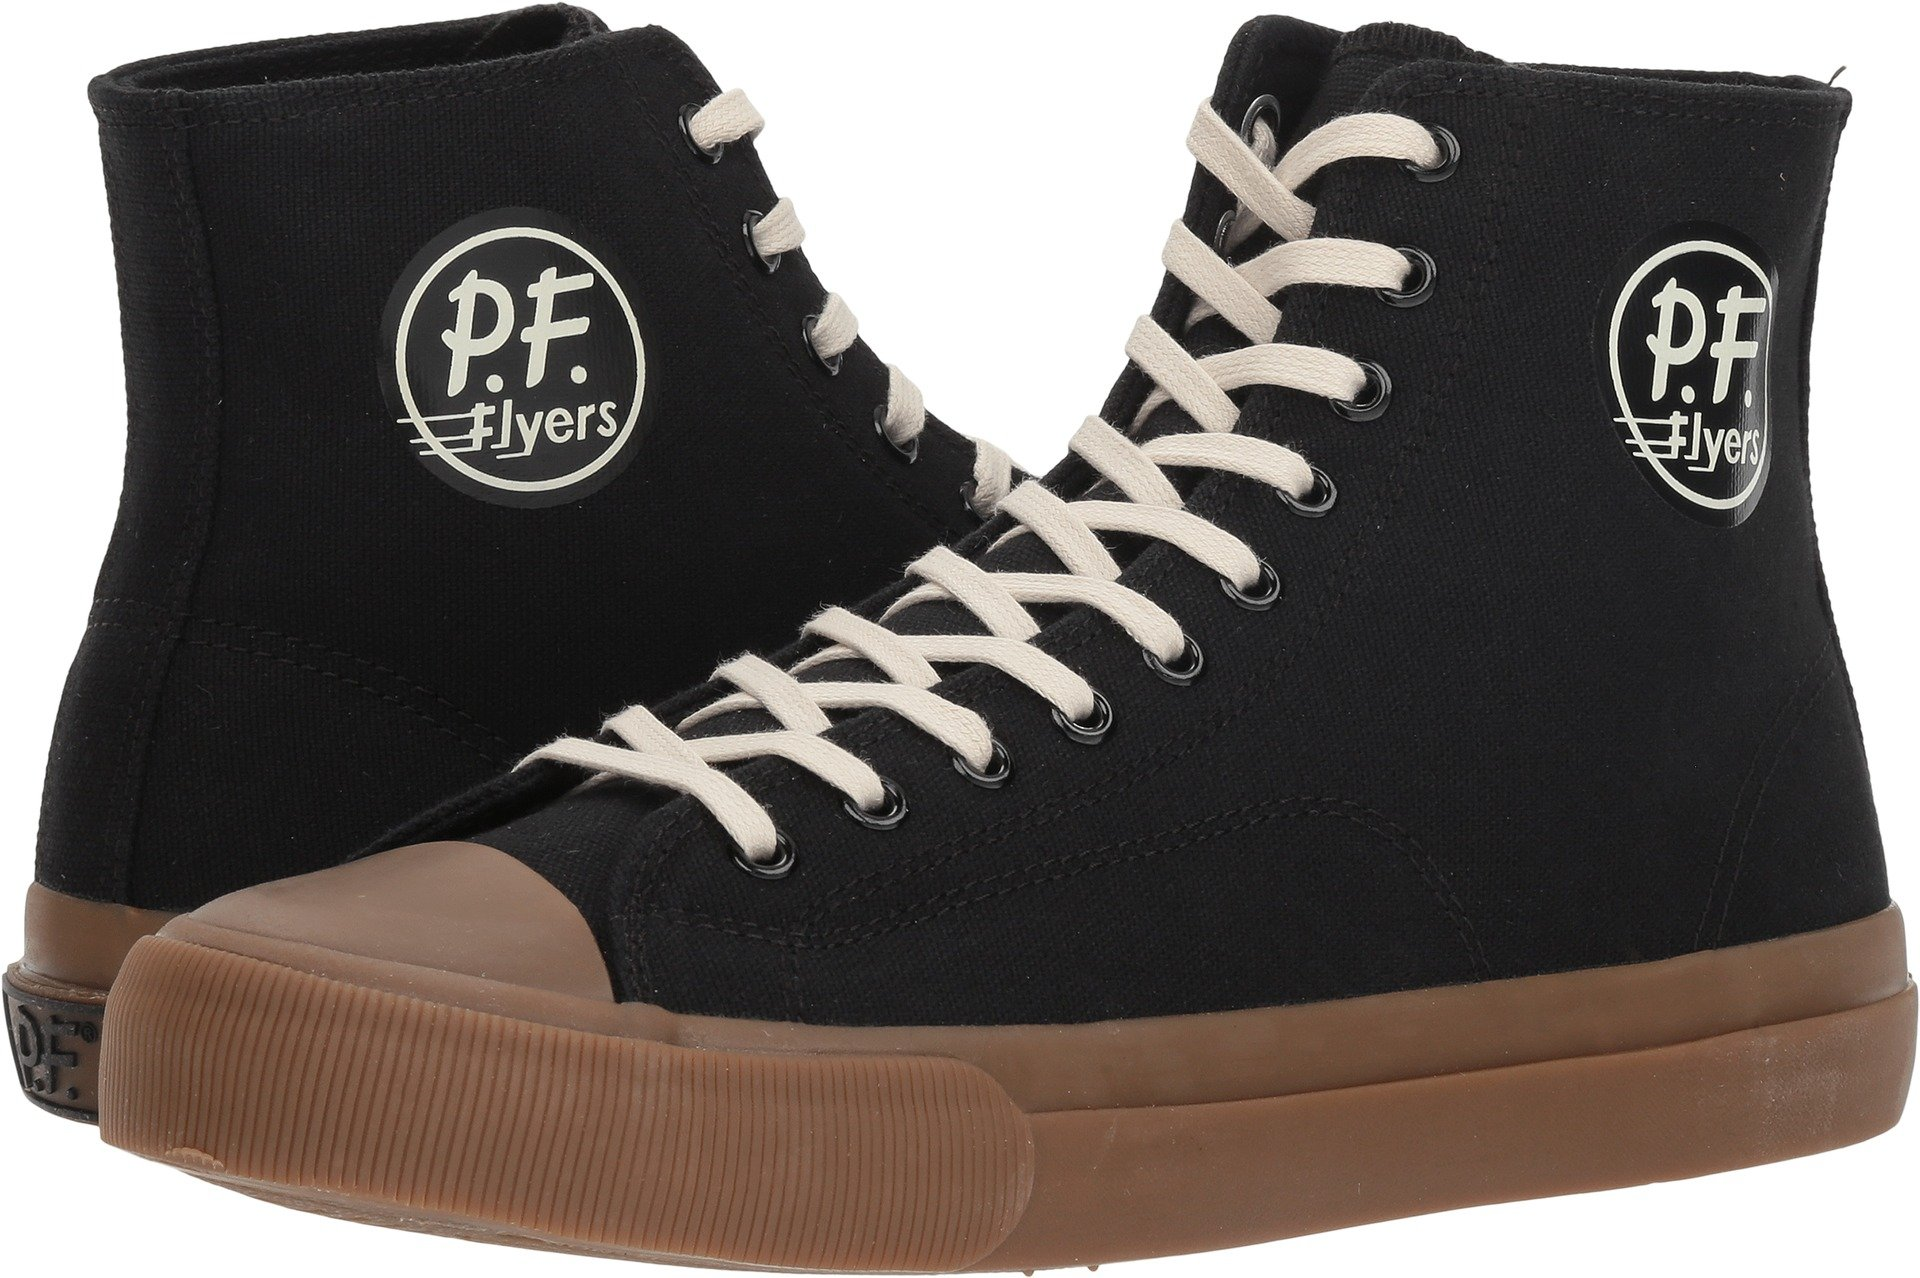 PF Flyers All American